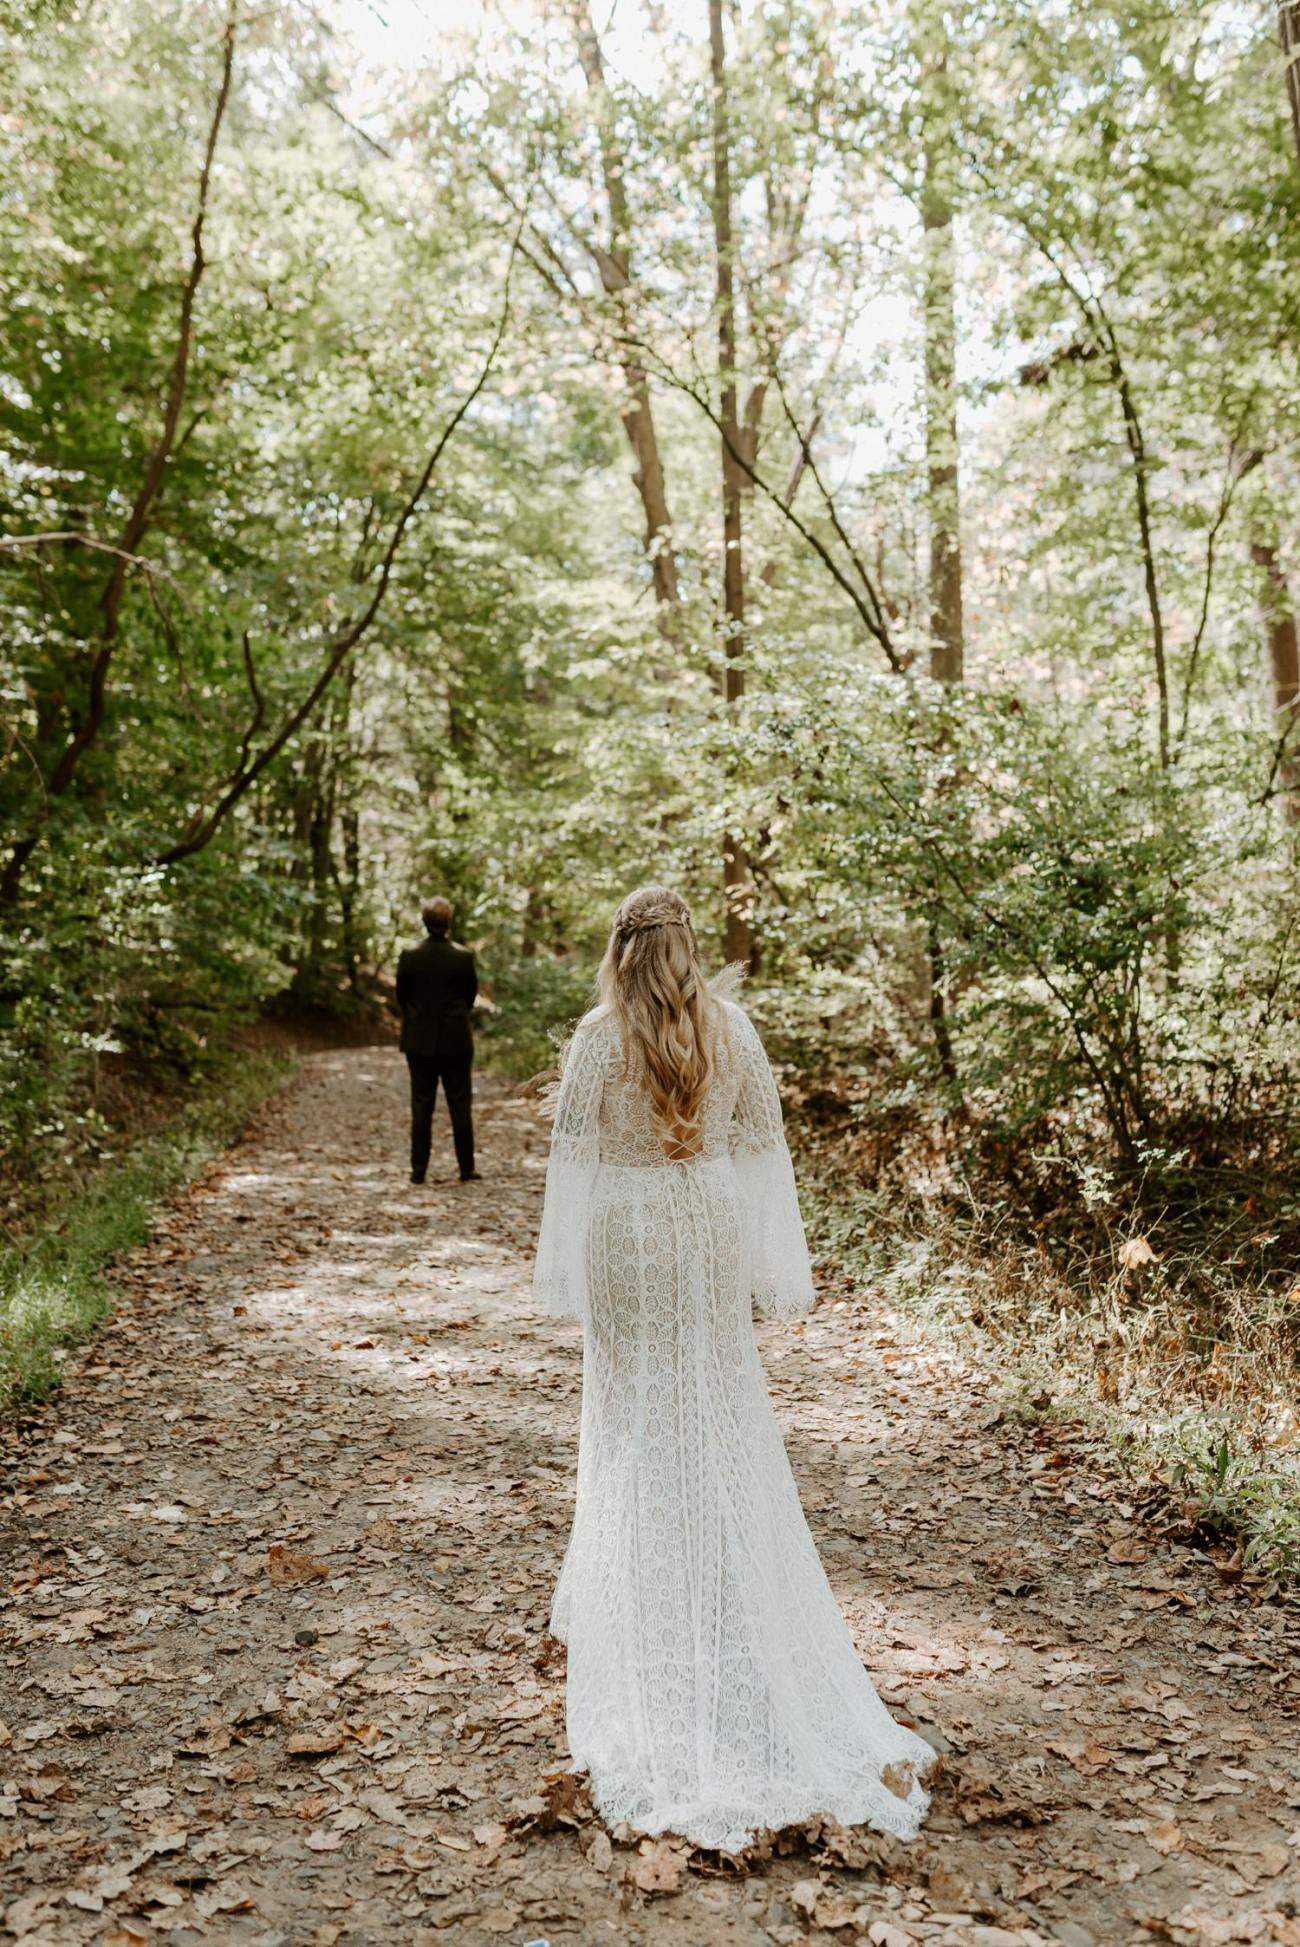 New Jersey Backyard Wedding Vintage Boho Wedding Hemlock Falls NJ Bend Oregon Wedding Phtographer Anais Possamai Photography 001